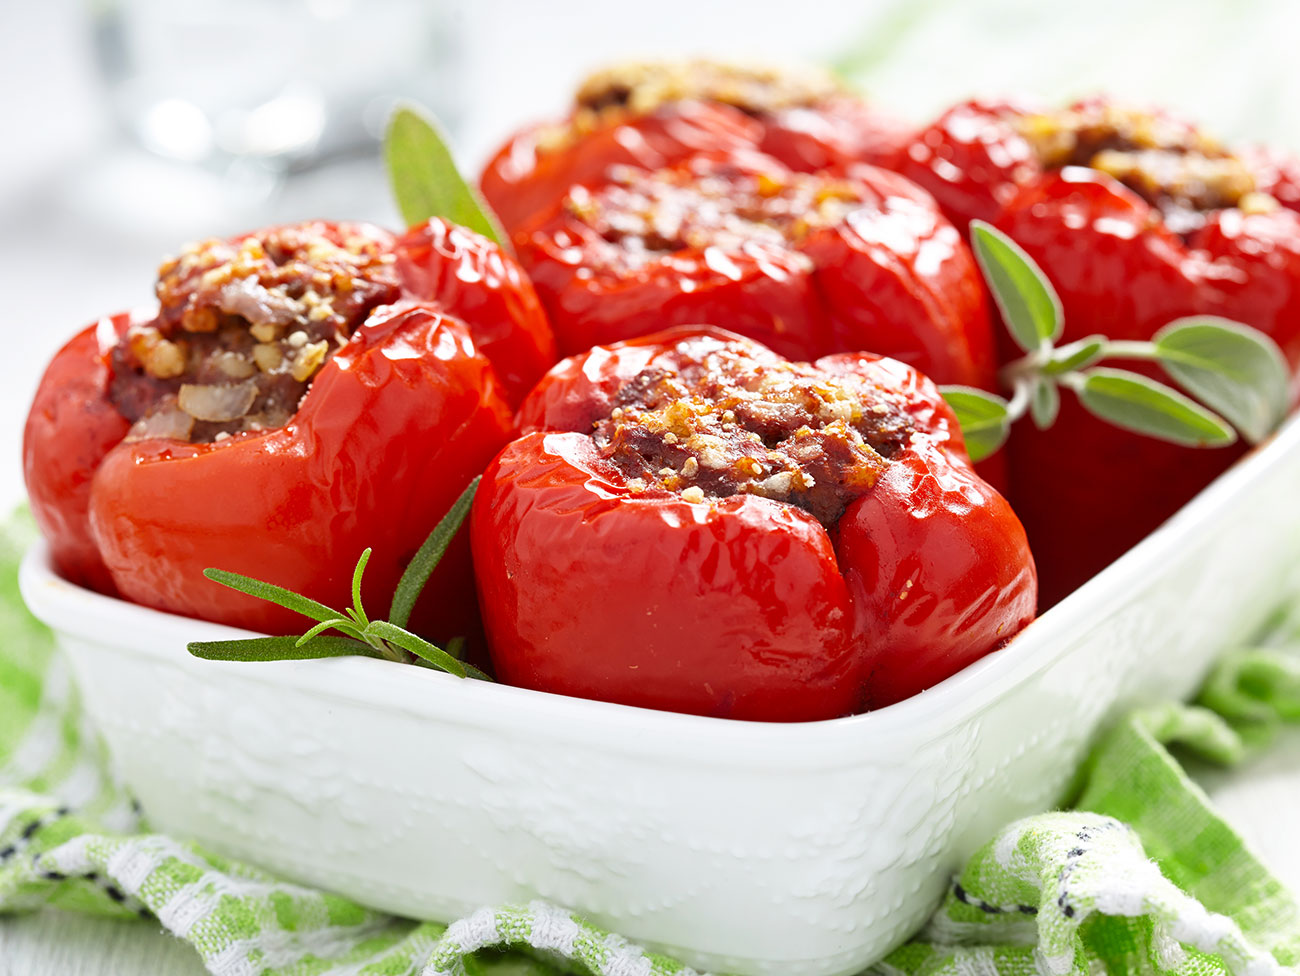 ceramic casserole dish with stuffed red bell peppers garnished with sage leaves